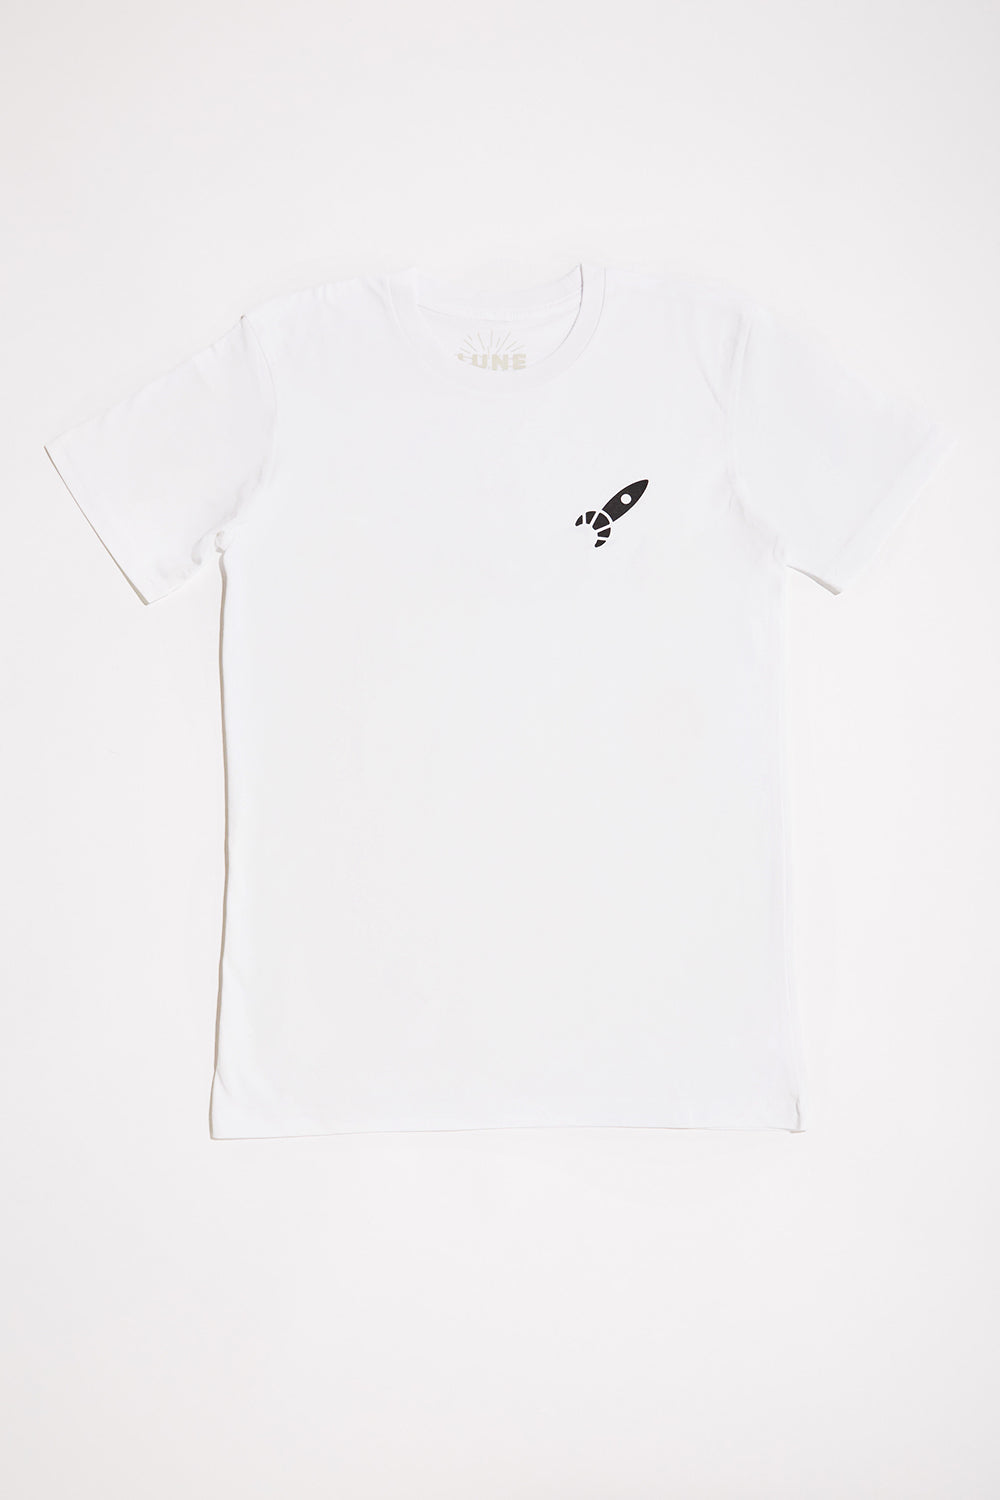 SALE - Unisex White Lune T-Shirt (50% off at checkout)